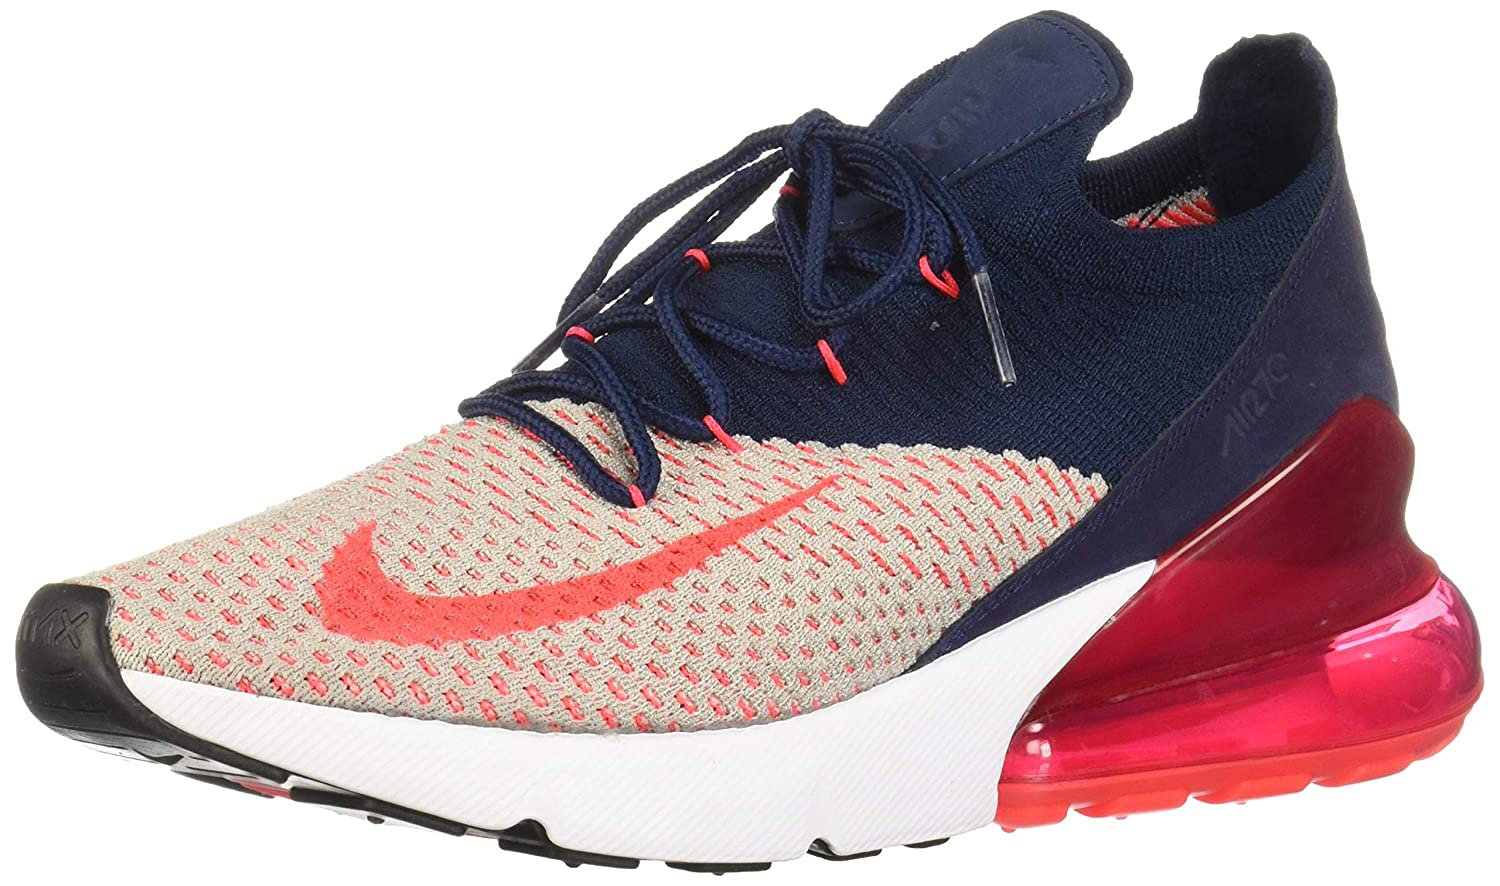 MultiCouleure (Moon Particle rouge Orbit College Navy 200) Nike W Air Max 270 Flyknit, Chaussures de Running Compétition Femme 41 EU